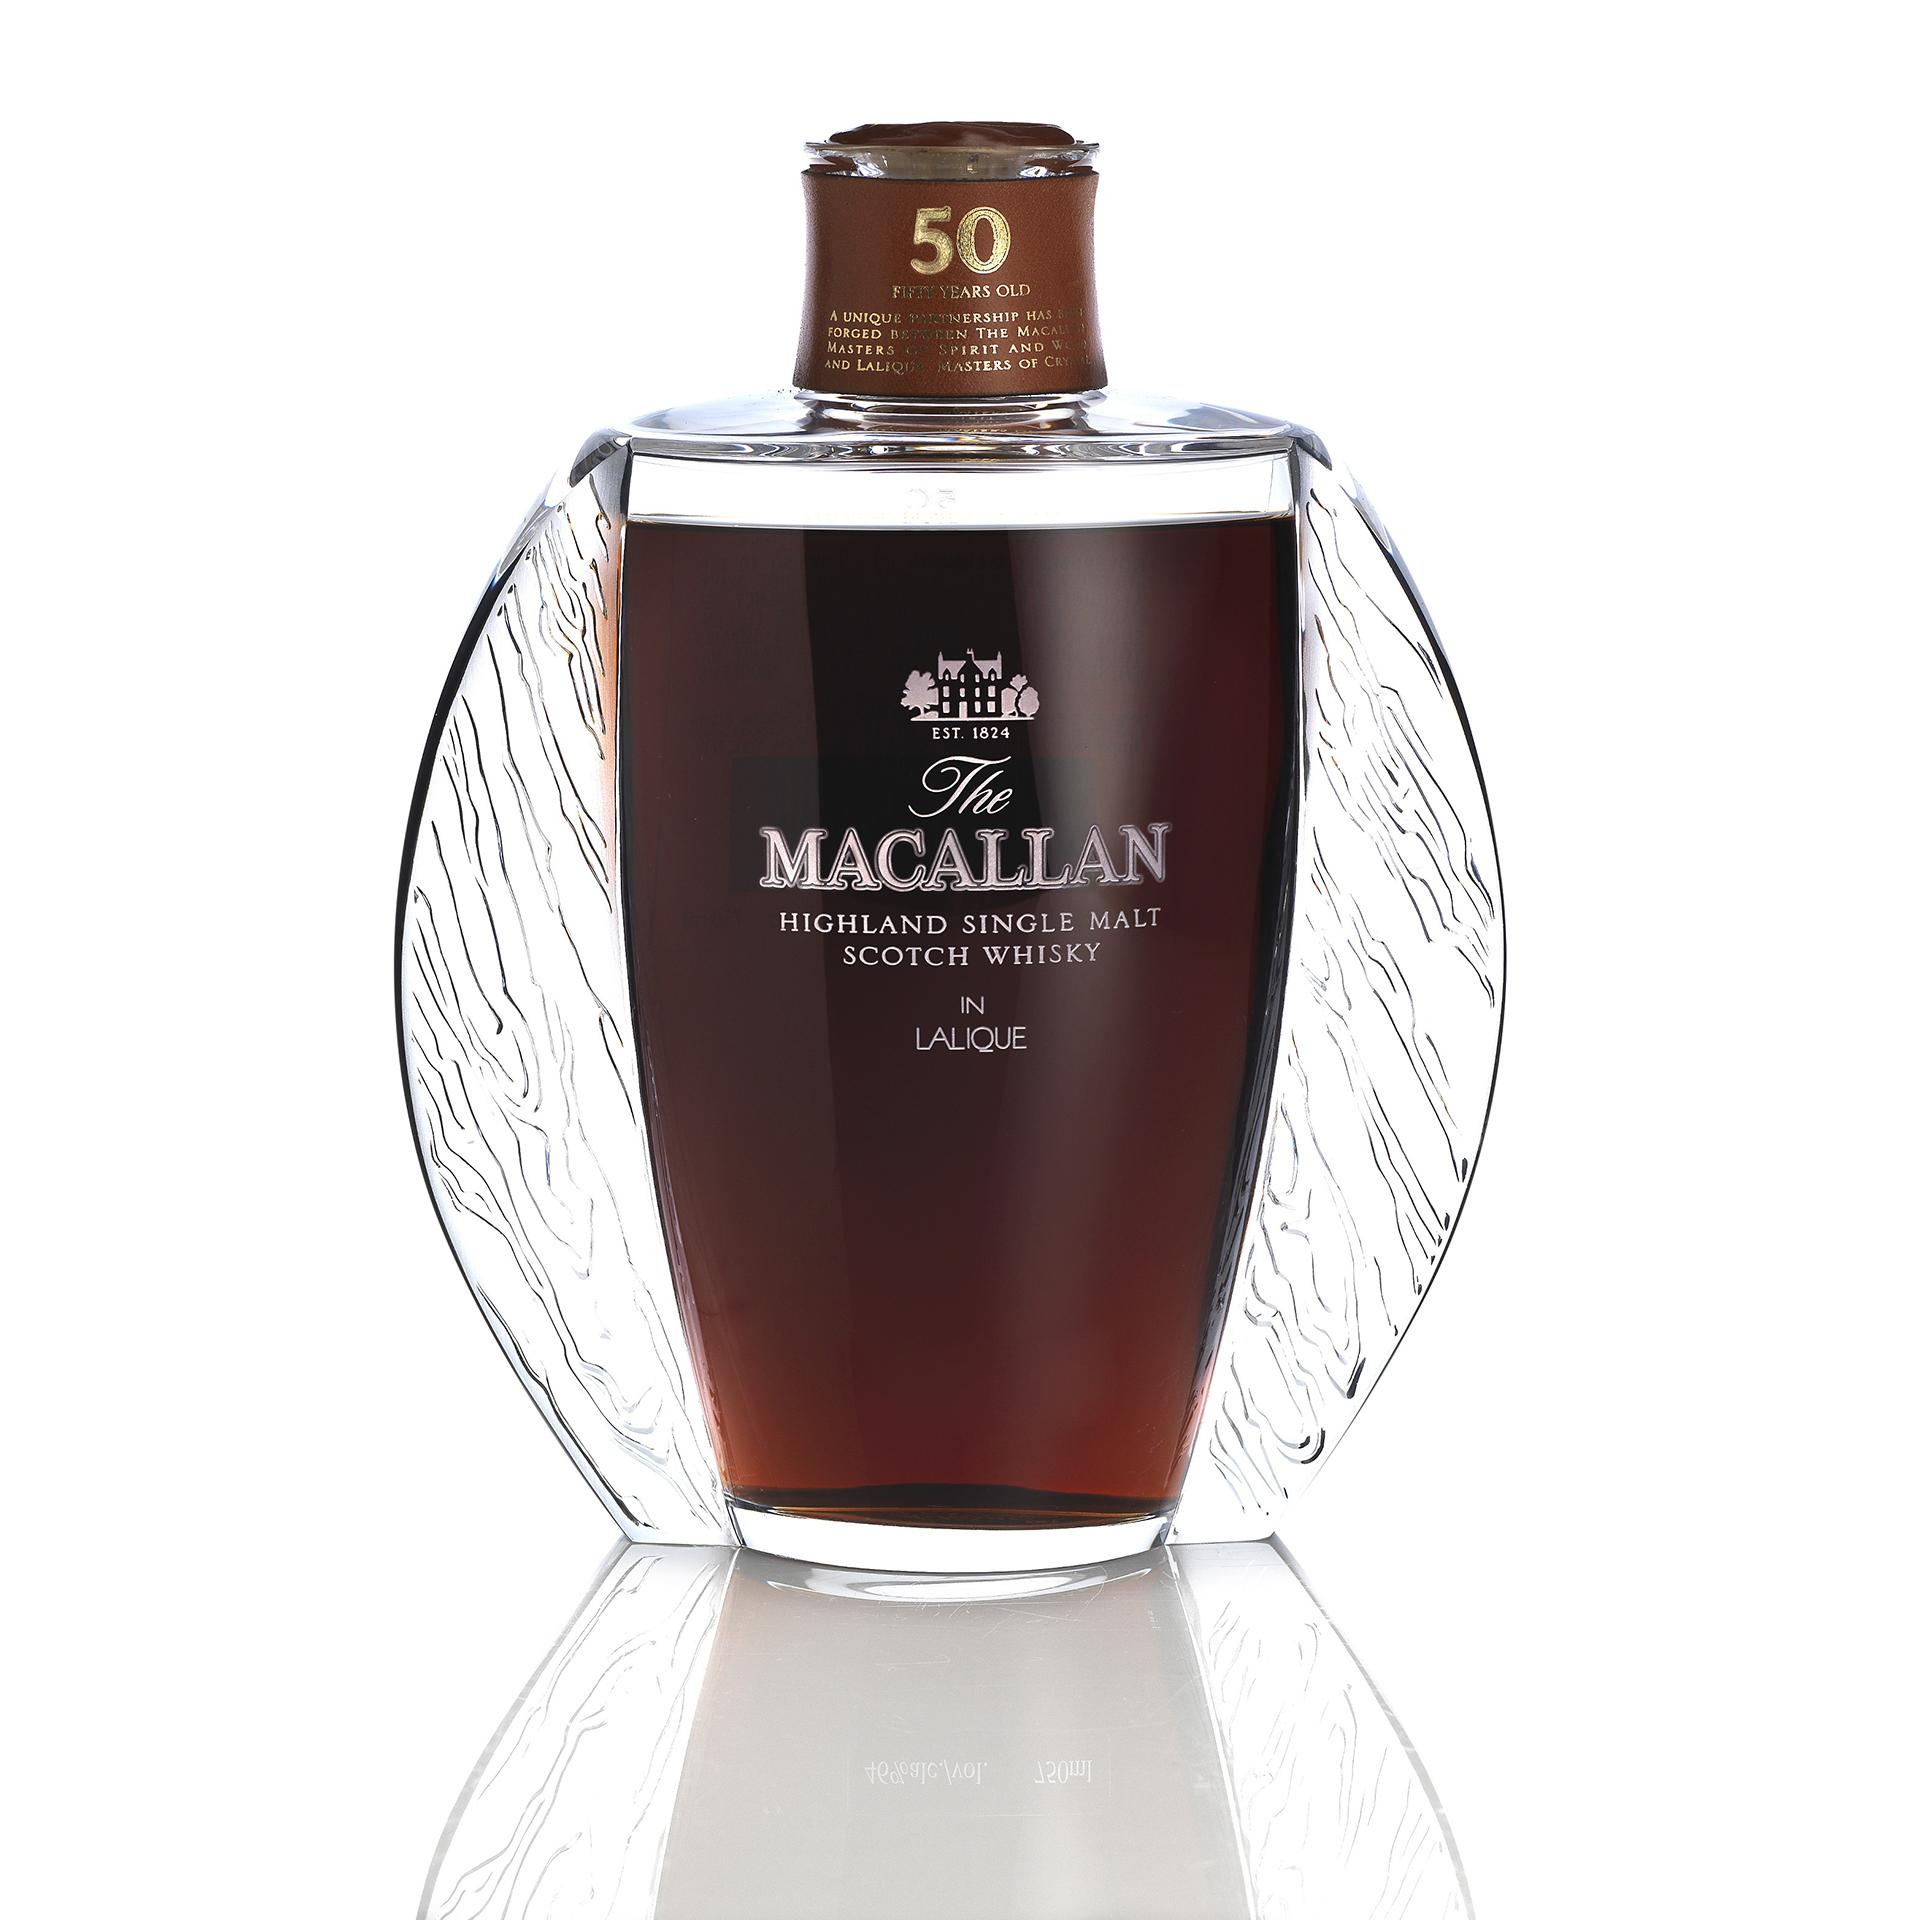 The Macallan Lalique 50 year old